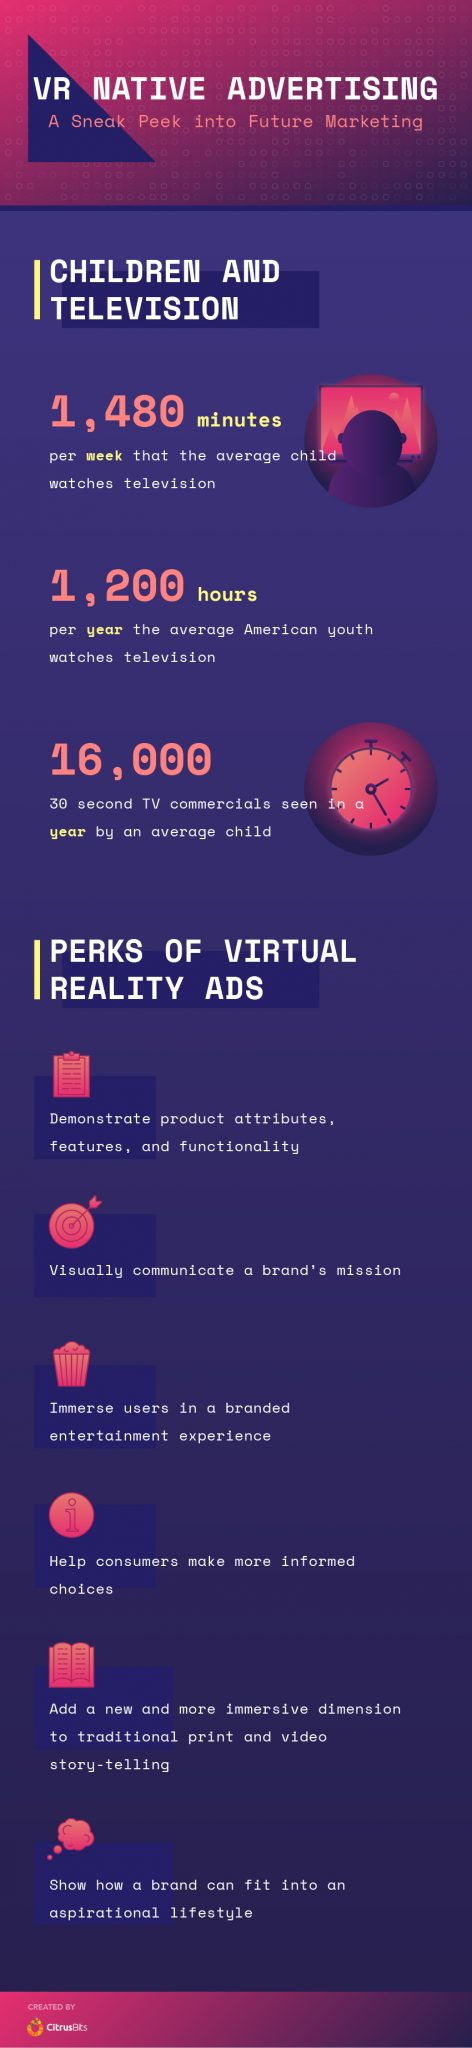 vr-native-advertising-sneak-peek-future-marketing-infographics